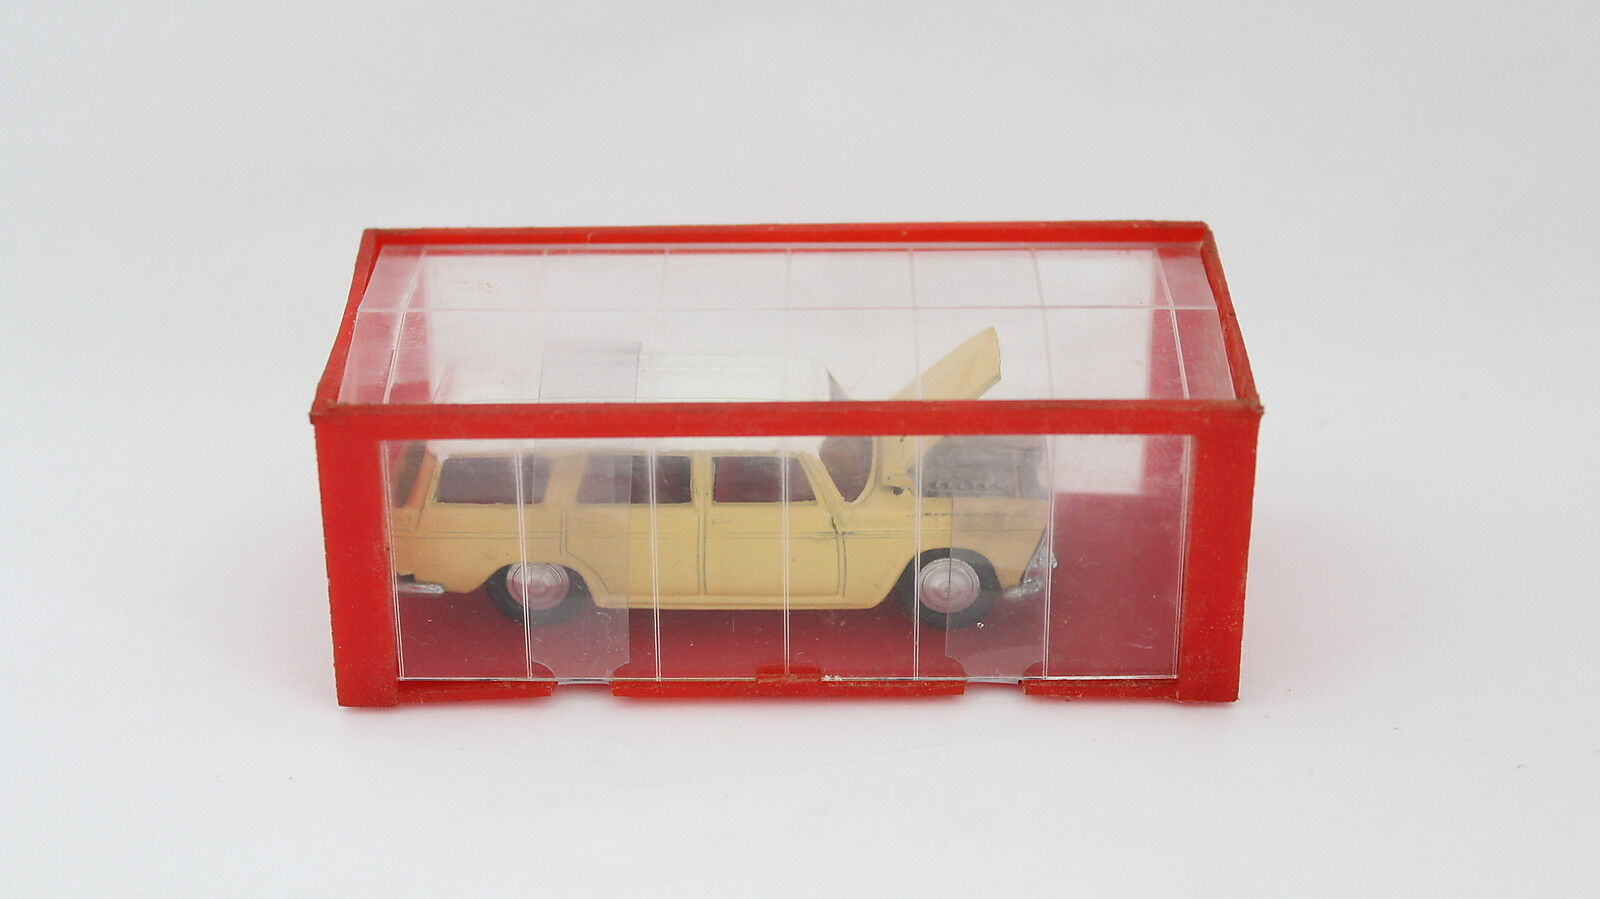 MINI DINKY No. 21 FIAT 2300 STATION WAGON SW MECCANO FONDO MAGAZZINO [OR3-28]